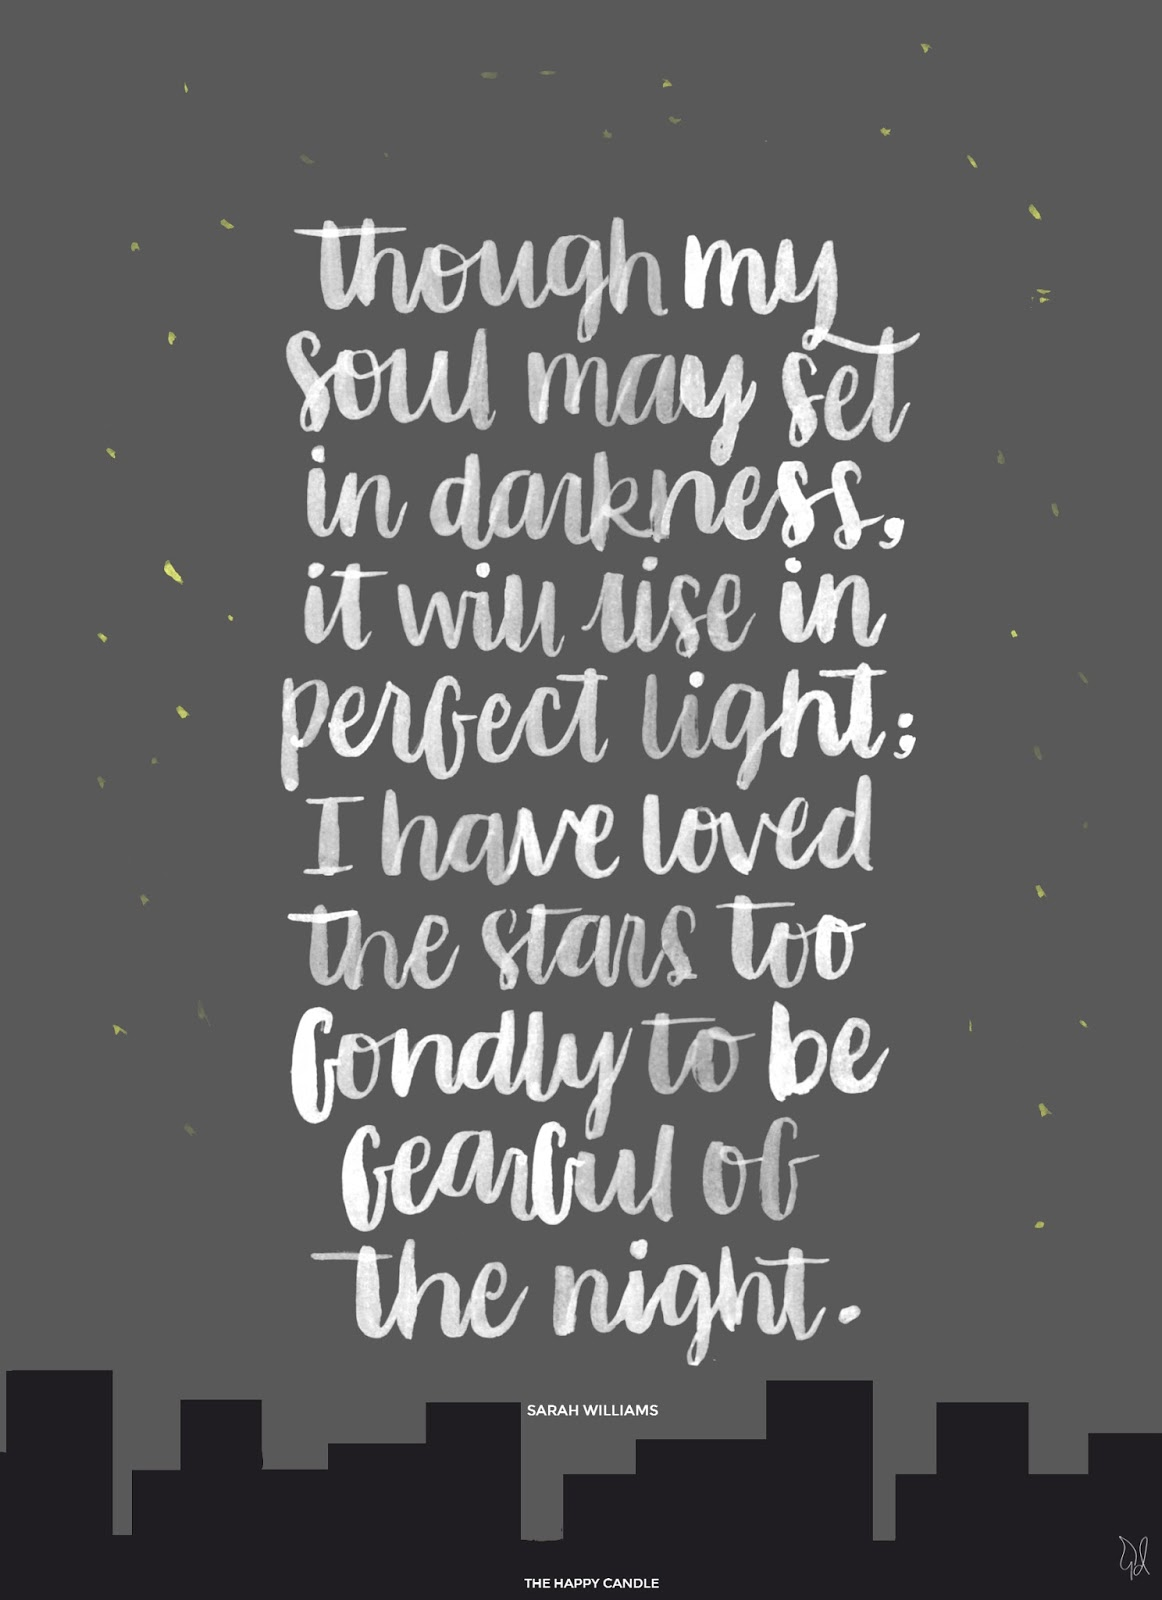 Though my soul may set in darkness, it will rise in perfect light. I have loved the stars too fondly to be fearful of the night. Sarah Williams. The Old Astronomer. Quote Brush Lettering Print.